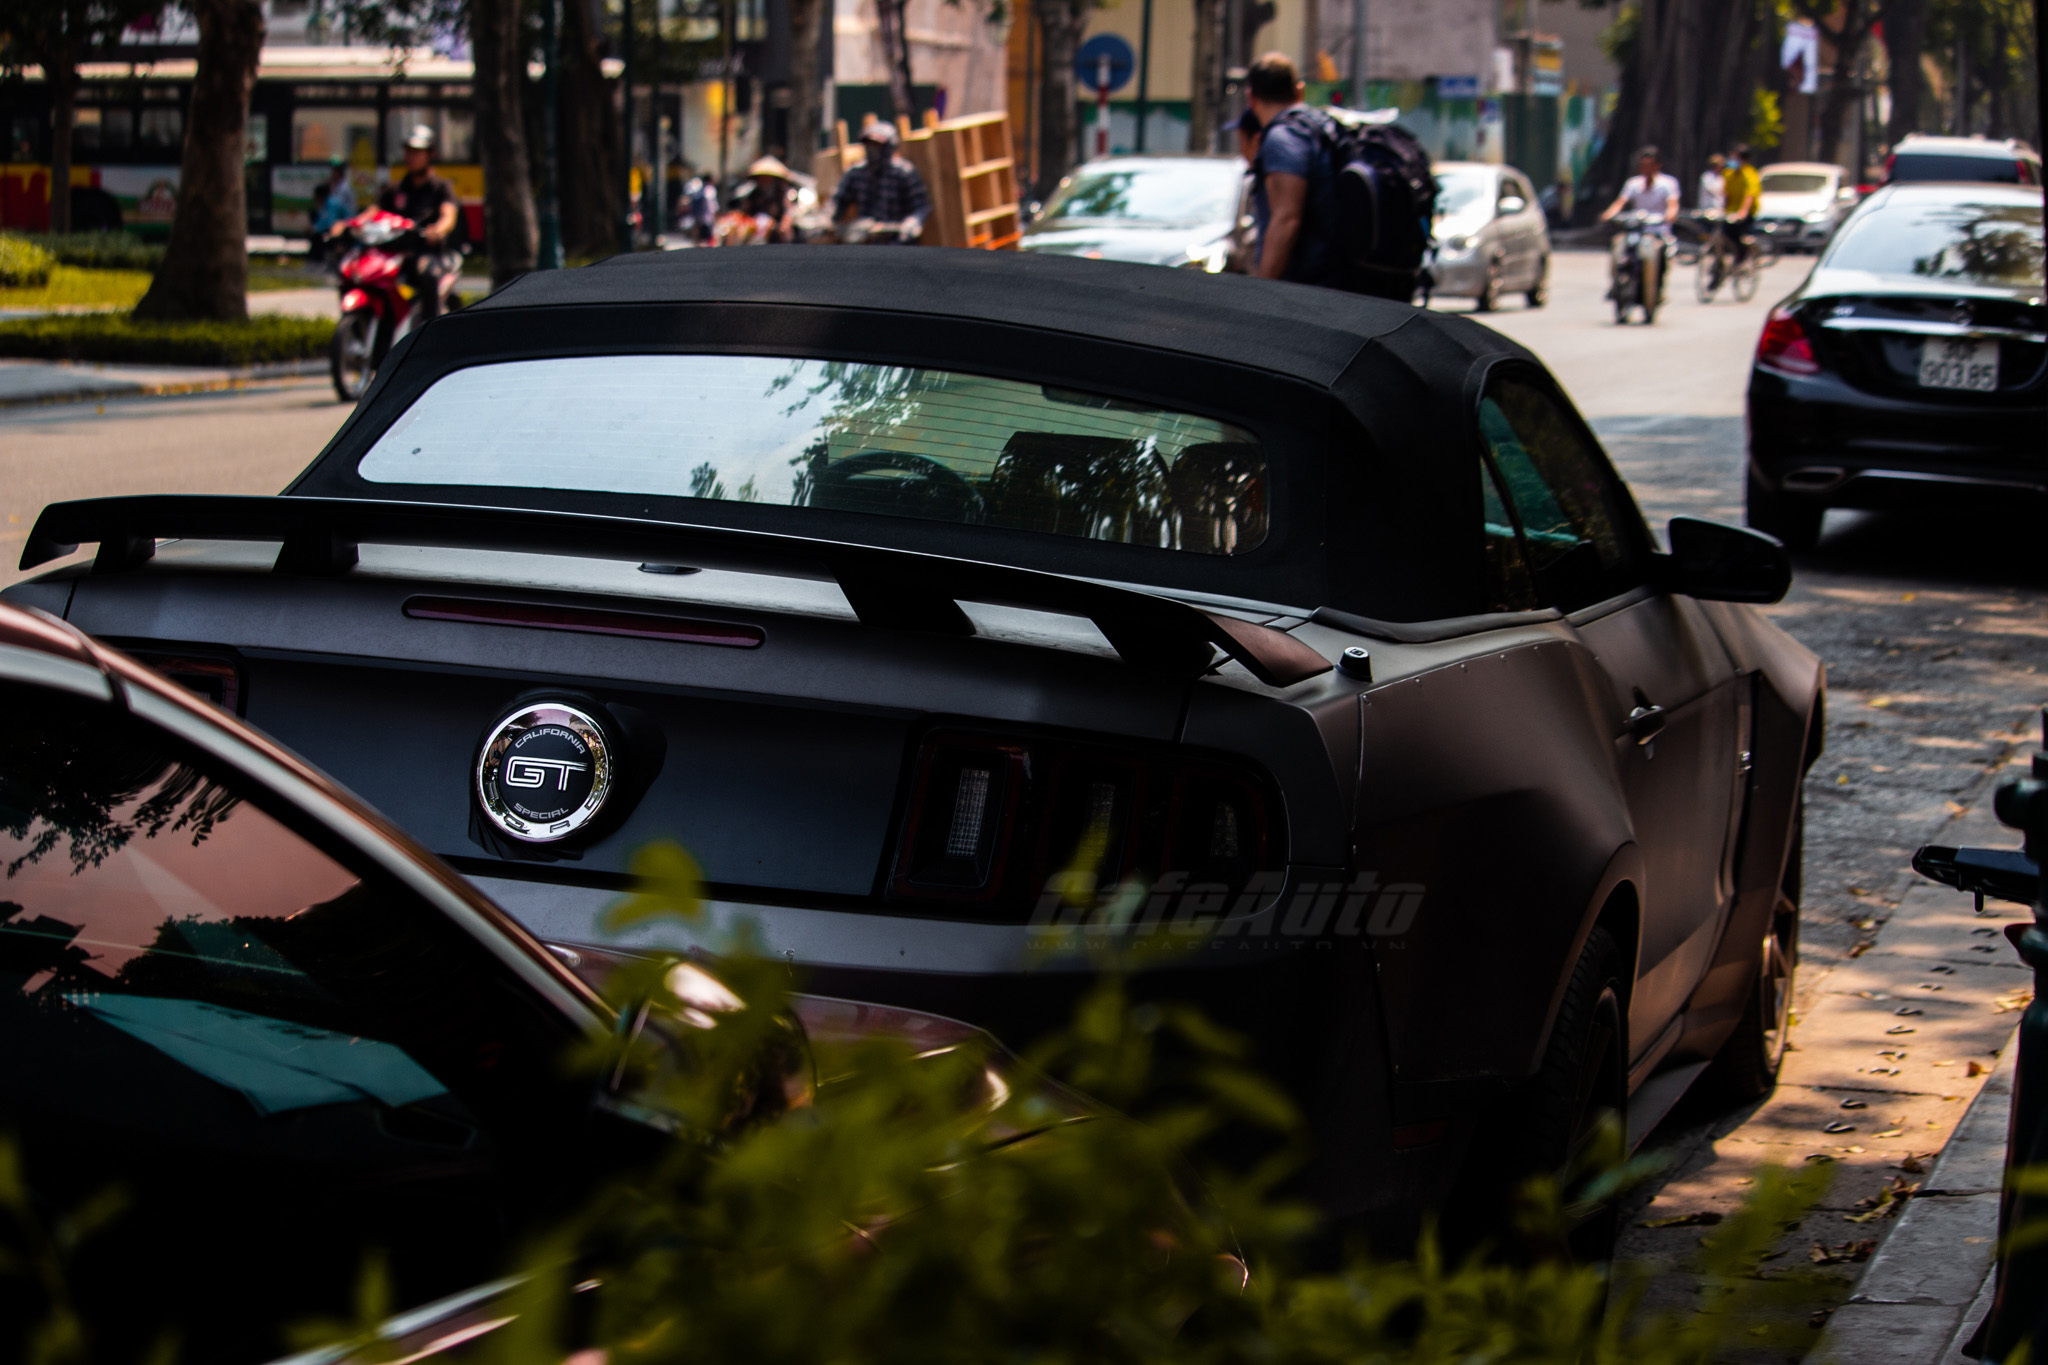 mustangGT-cafeautovn-10